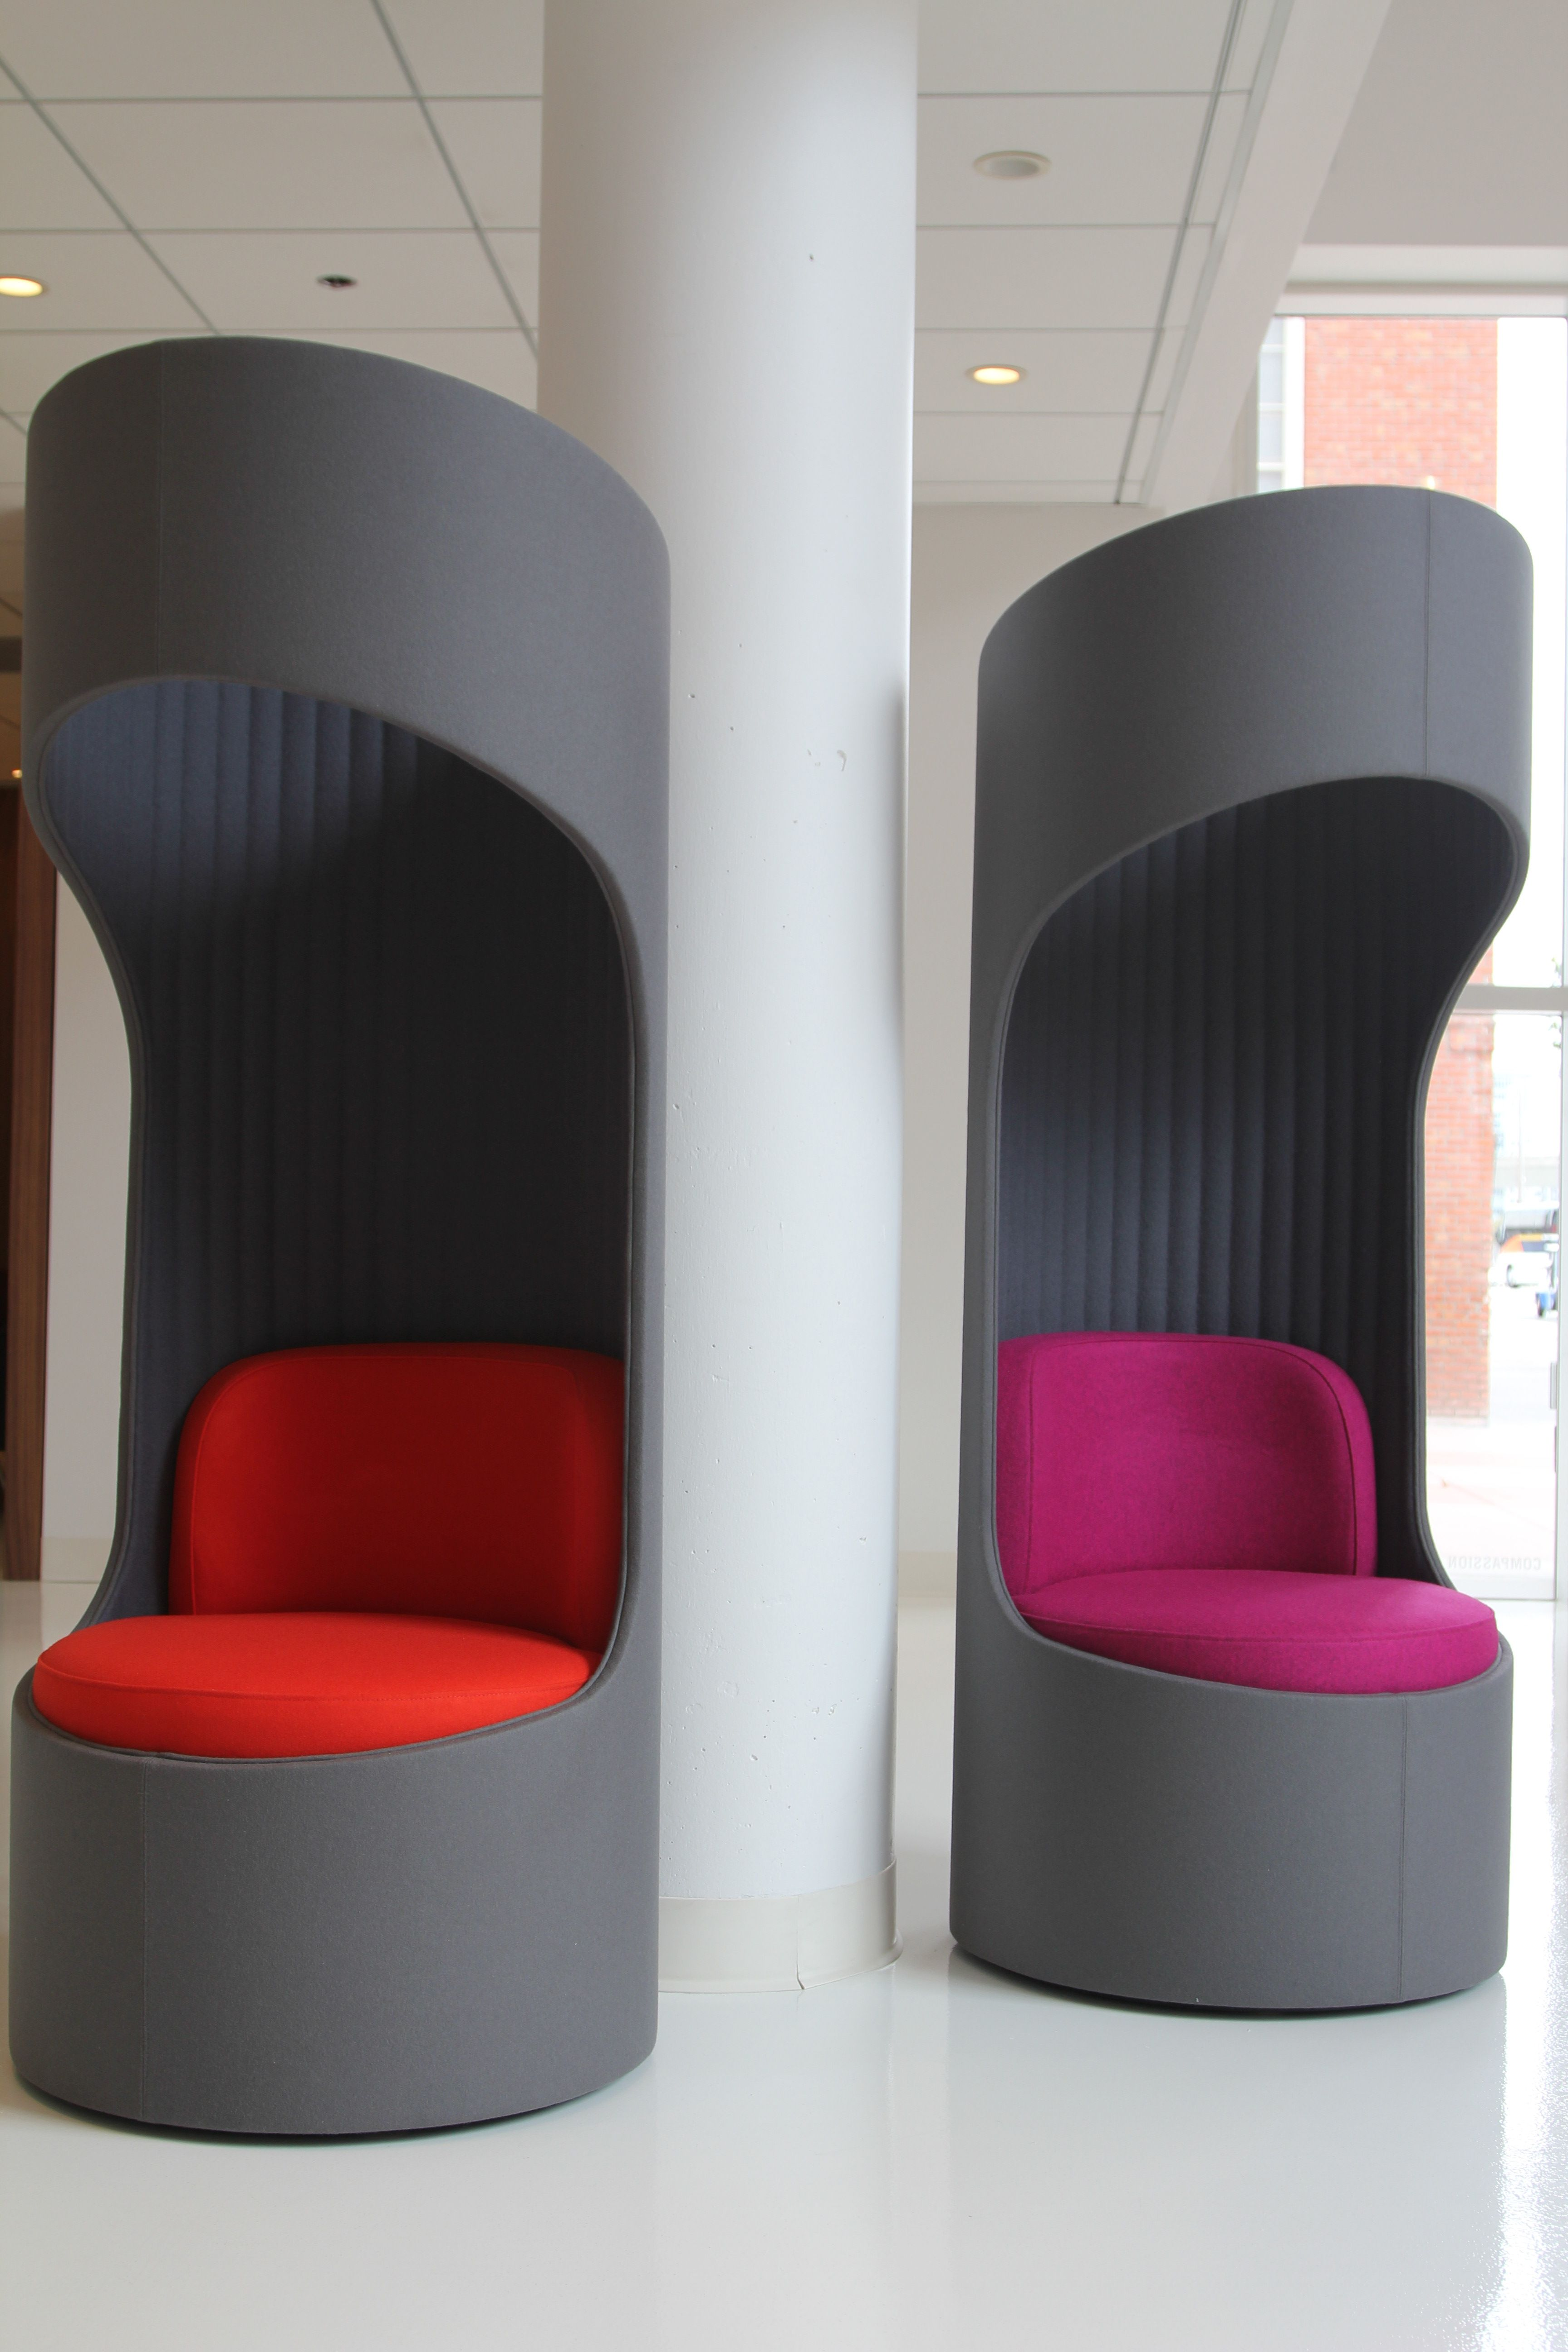 office furniture trade shows. trend personal space trade shows neocon kiu0027s connection zone privacy booths office furniture